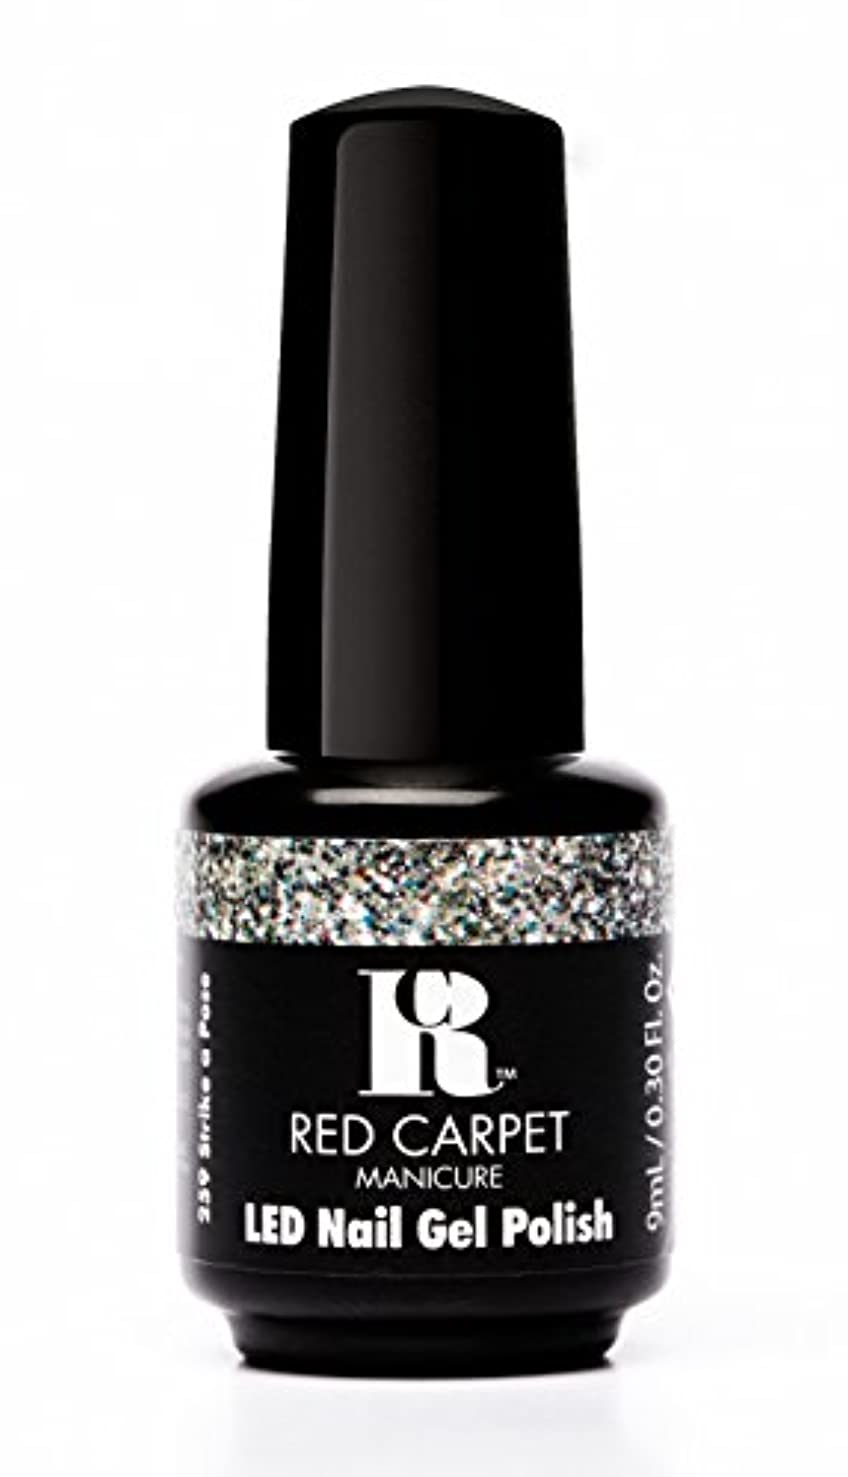 家最大化するインチRed Carpet Manicure - LED Nail Gel Polish - Trendz - Strike A Pose - 0.3oz / 9ml